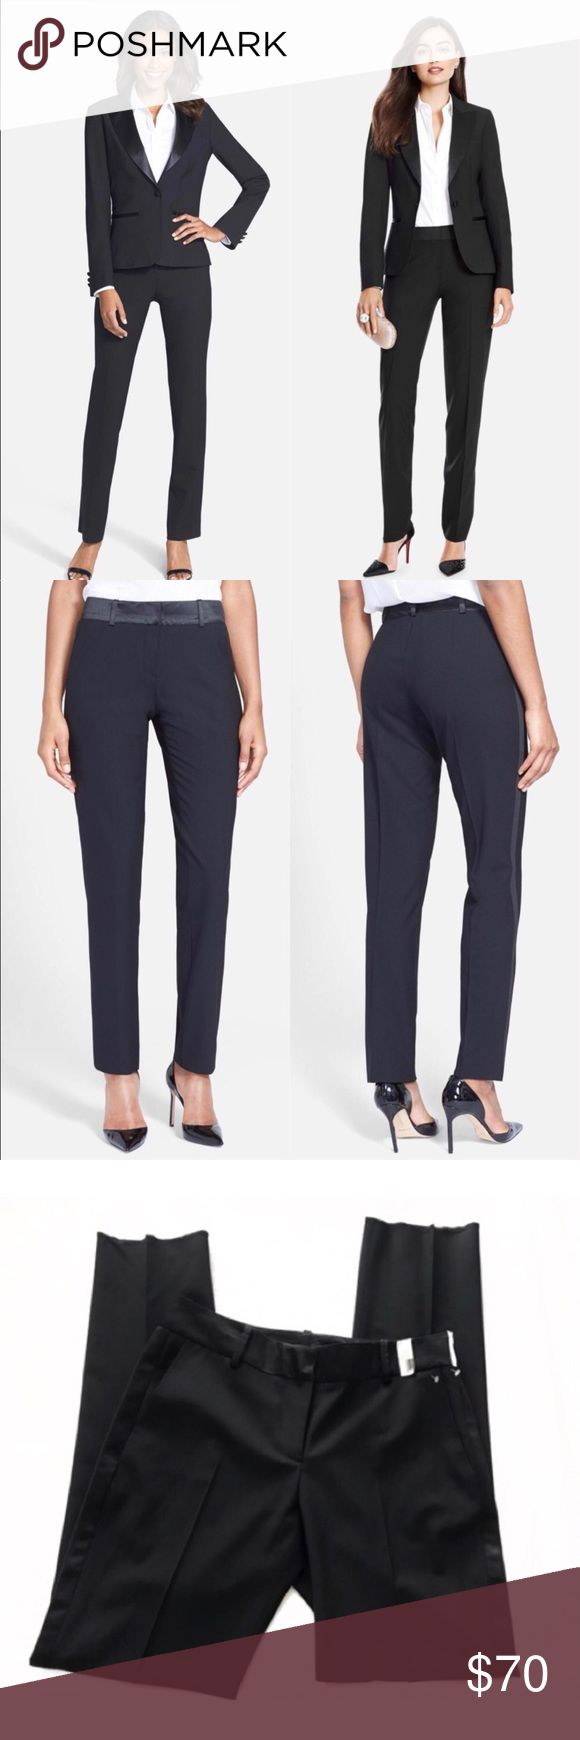 """After Six Tux Pants 🌸 Mid rise. A satin waistband and side stripes polish the tuxedo vibe of tapered stretch-wool pants, giving you a smart alternative to traditional cocktail-hour style. 32"""" inseam; 9 1/2"""" front rise; 14"""" back rise (size 8) Zip fly with hook-and-bar closure Side-seam pockets Unhemmed for easy tailoring Unlined 96% wool, 4% Lycra® spandex; 100% polyester satin trim Dry clean Made in the USA After Six Pants"""